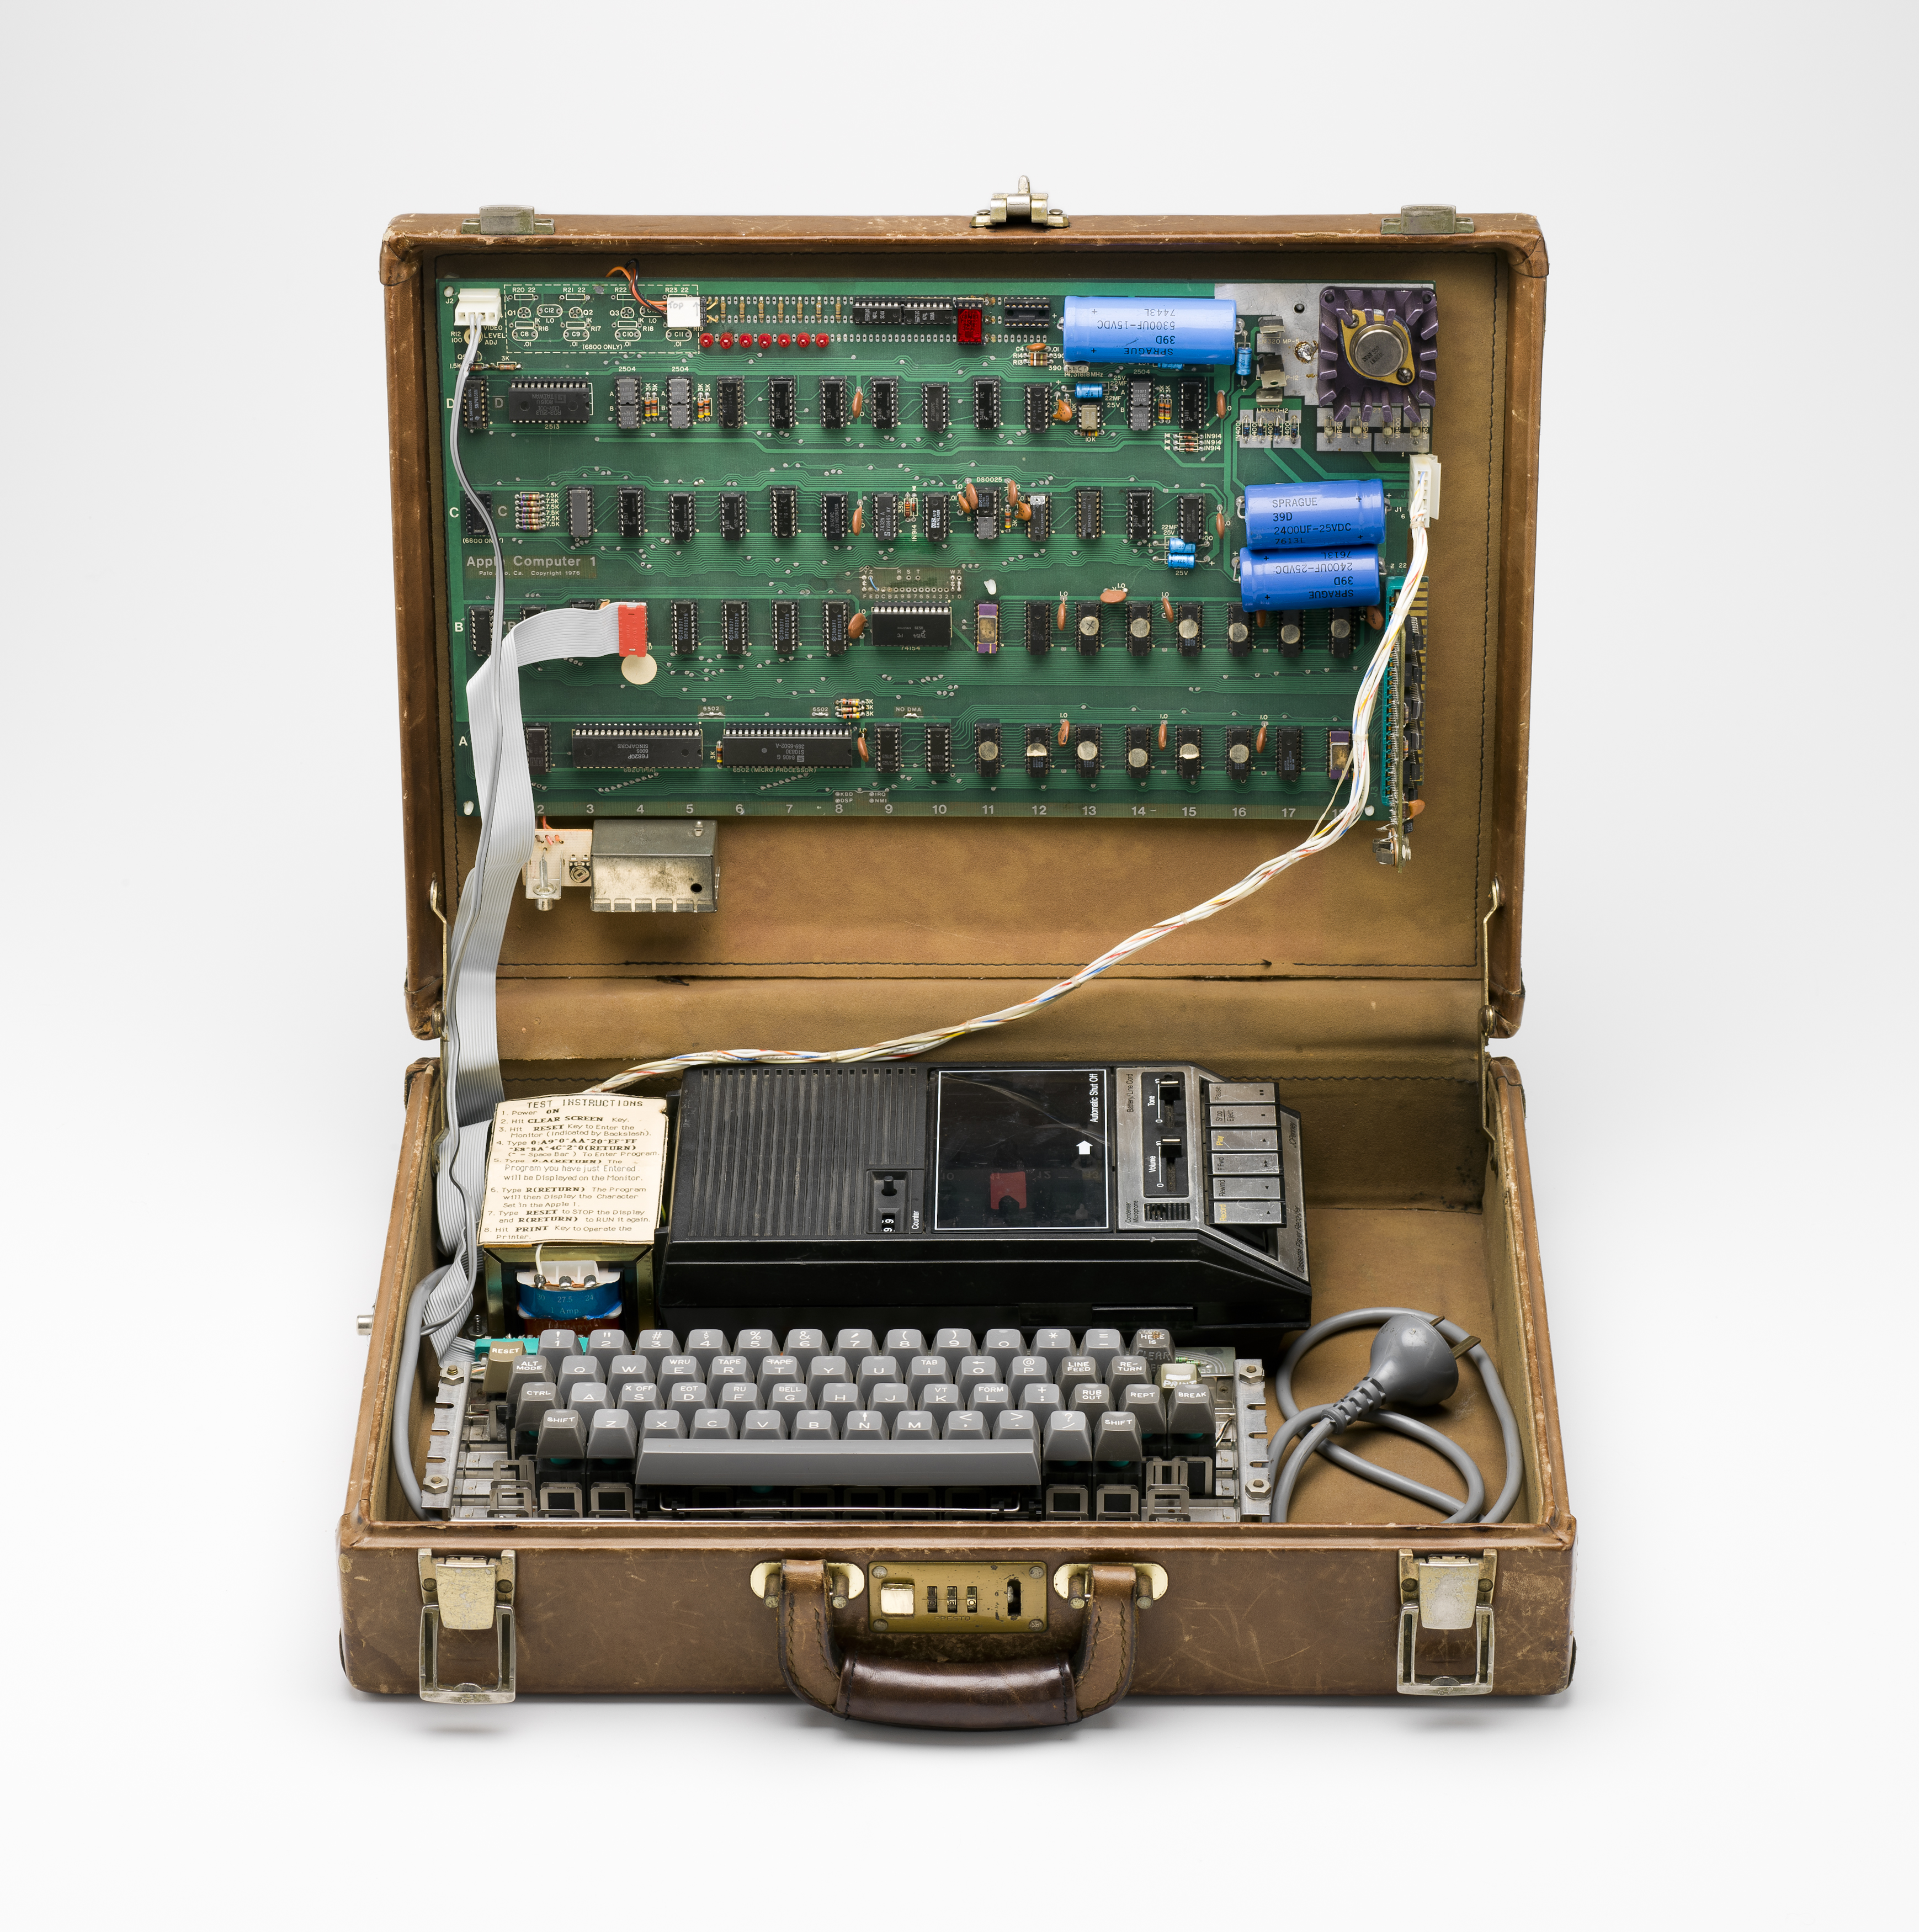 A brown leather suitcase is open withe the green motherboard attached to the inside of the lid. Sitting in the suitcase base is a keyboard and tape recorder.